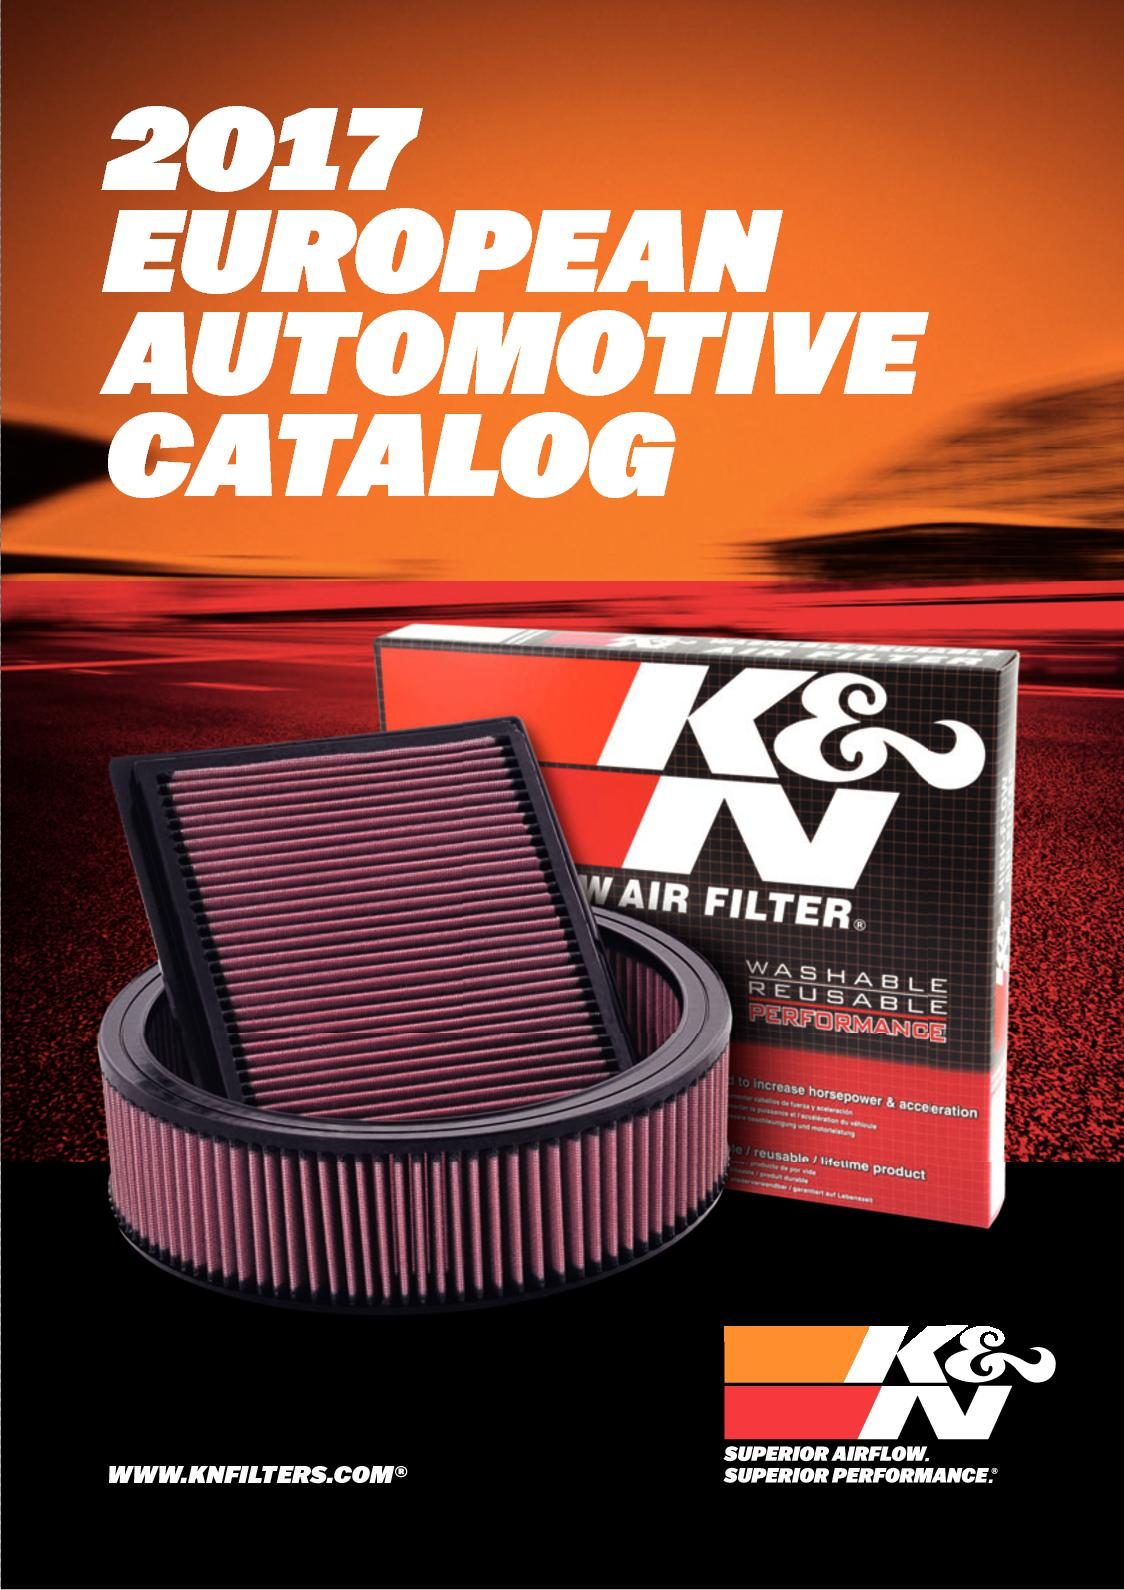 33-2125 K/&N AIR FILTER fits SKODA SUPERB 2.0 Diesel 2001-2007